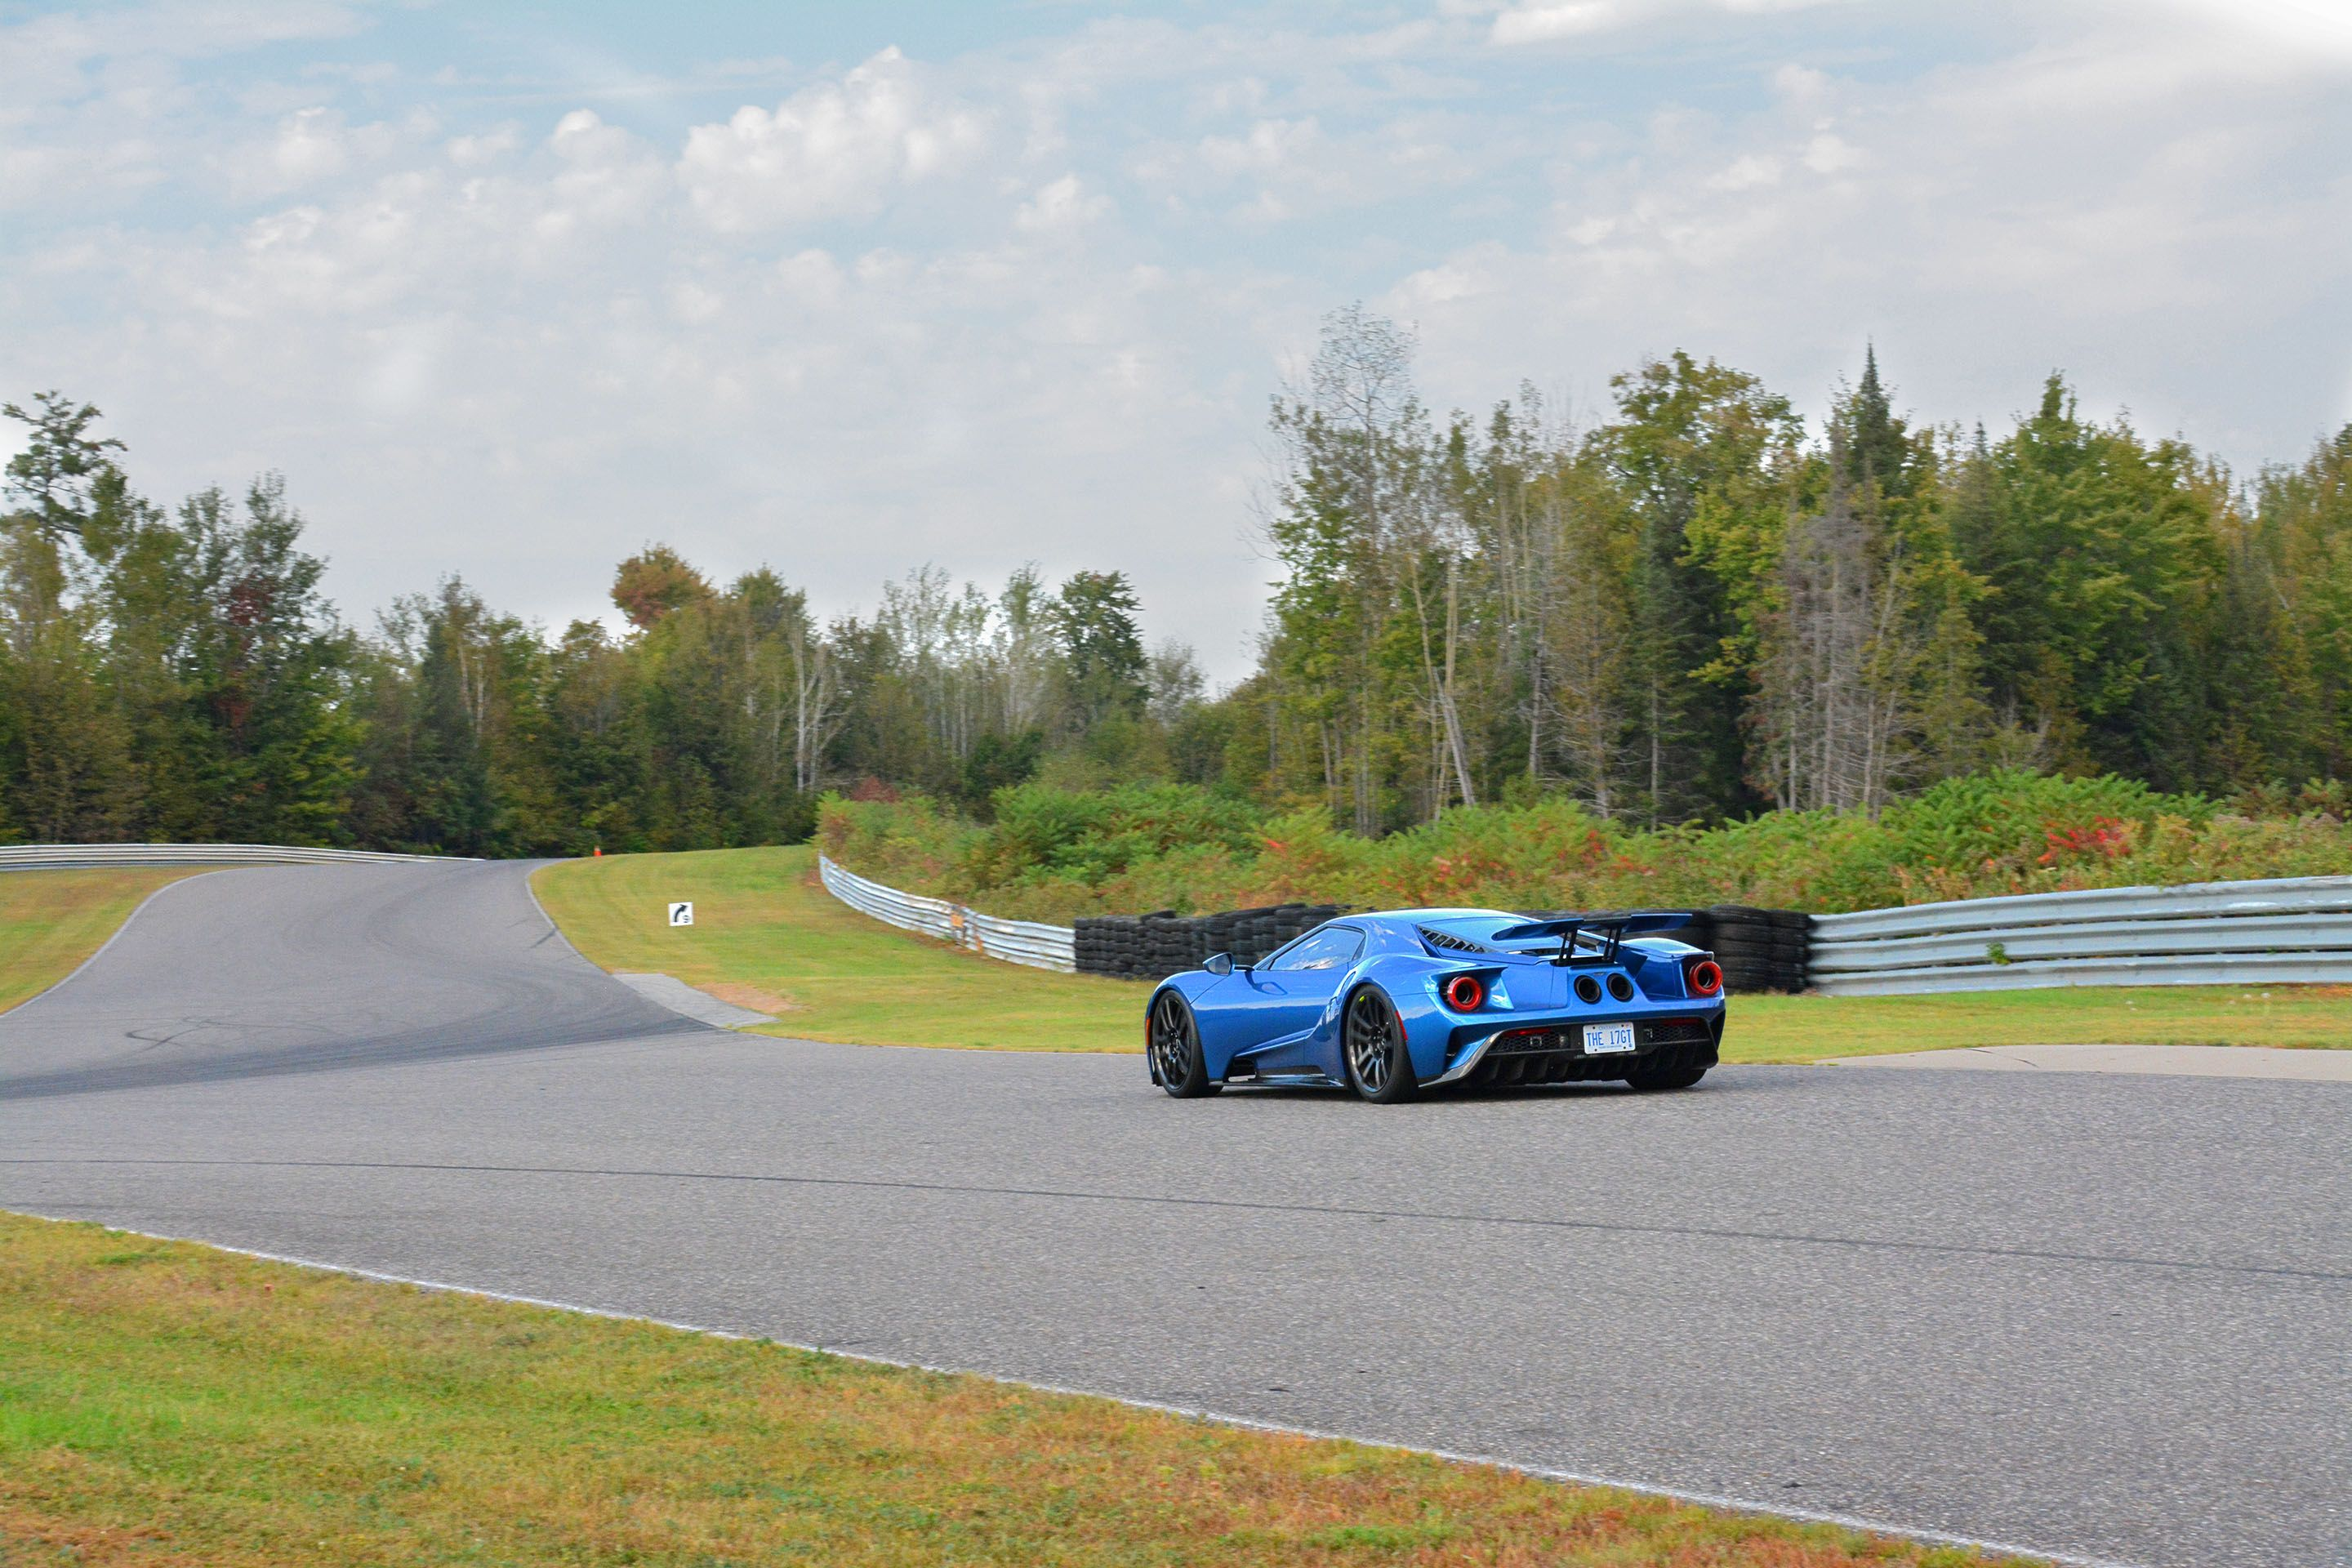 Ultra Exotic Ford Gt Deliveries Commence In Canada Trackworthy Com Ultra Exotic Ford Gt Deliveries Commence Canada